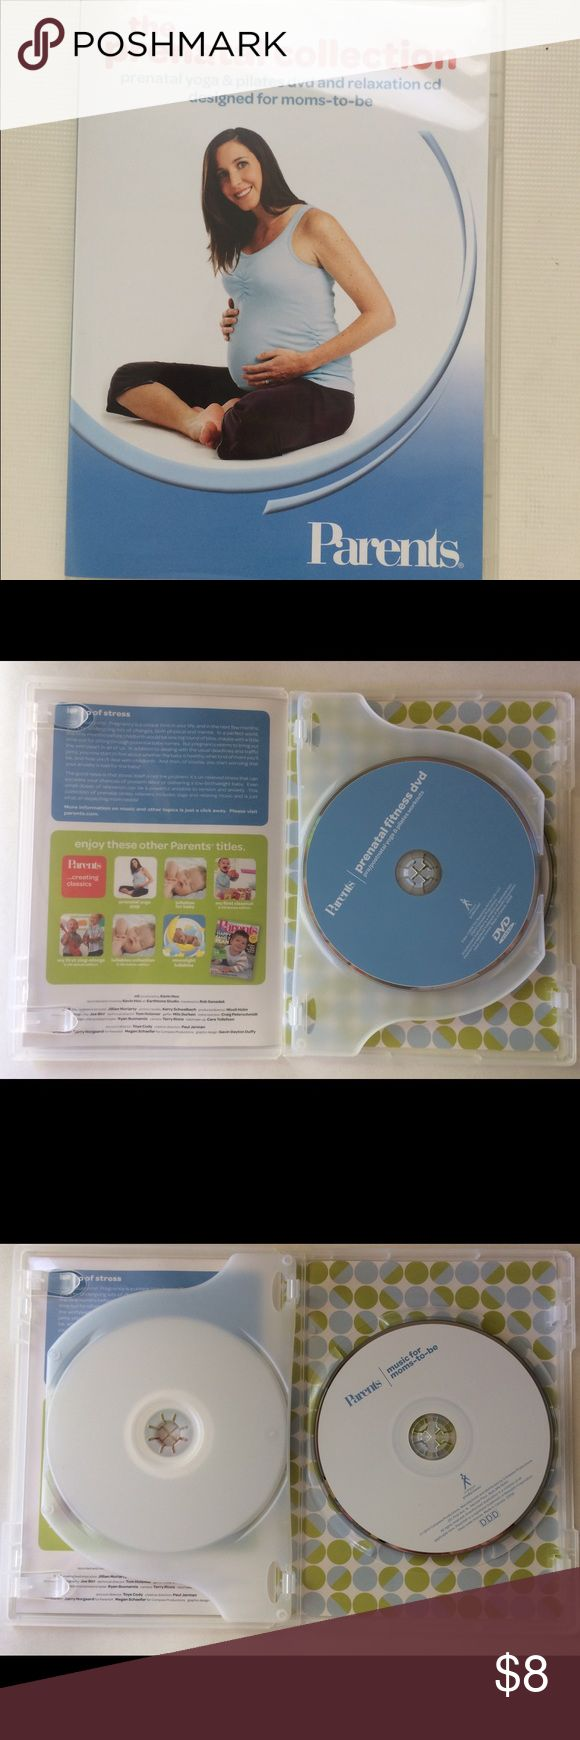 Prenatal Yoga & Pilates Dvd and Relaxation CD. For moms-to-be prenatal yoga and pilates dvd. 80 minutes video. Cd music offers 50 minutes of gentle instrumental music with soothing sounds of nature in the background. Other